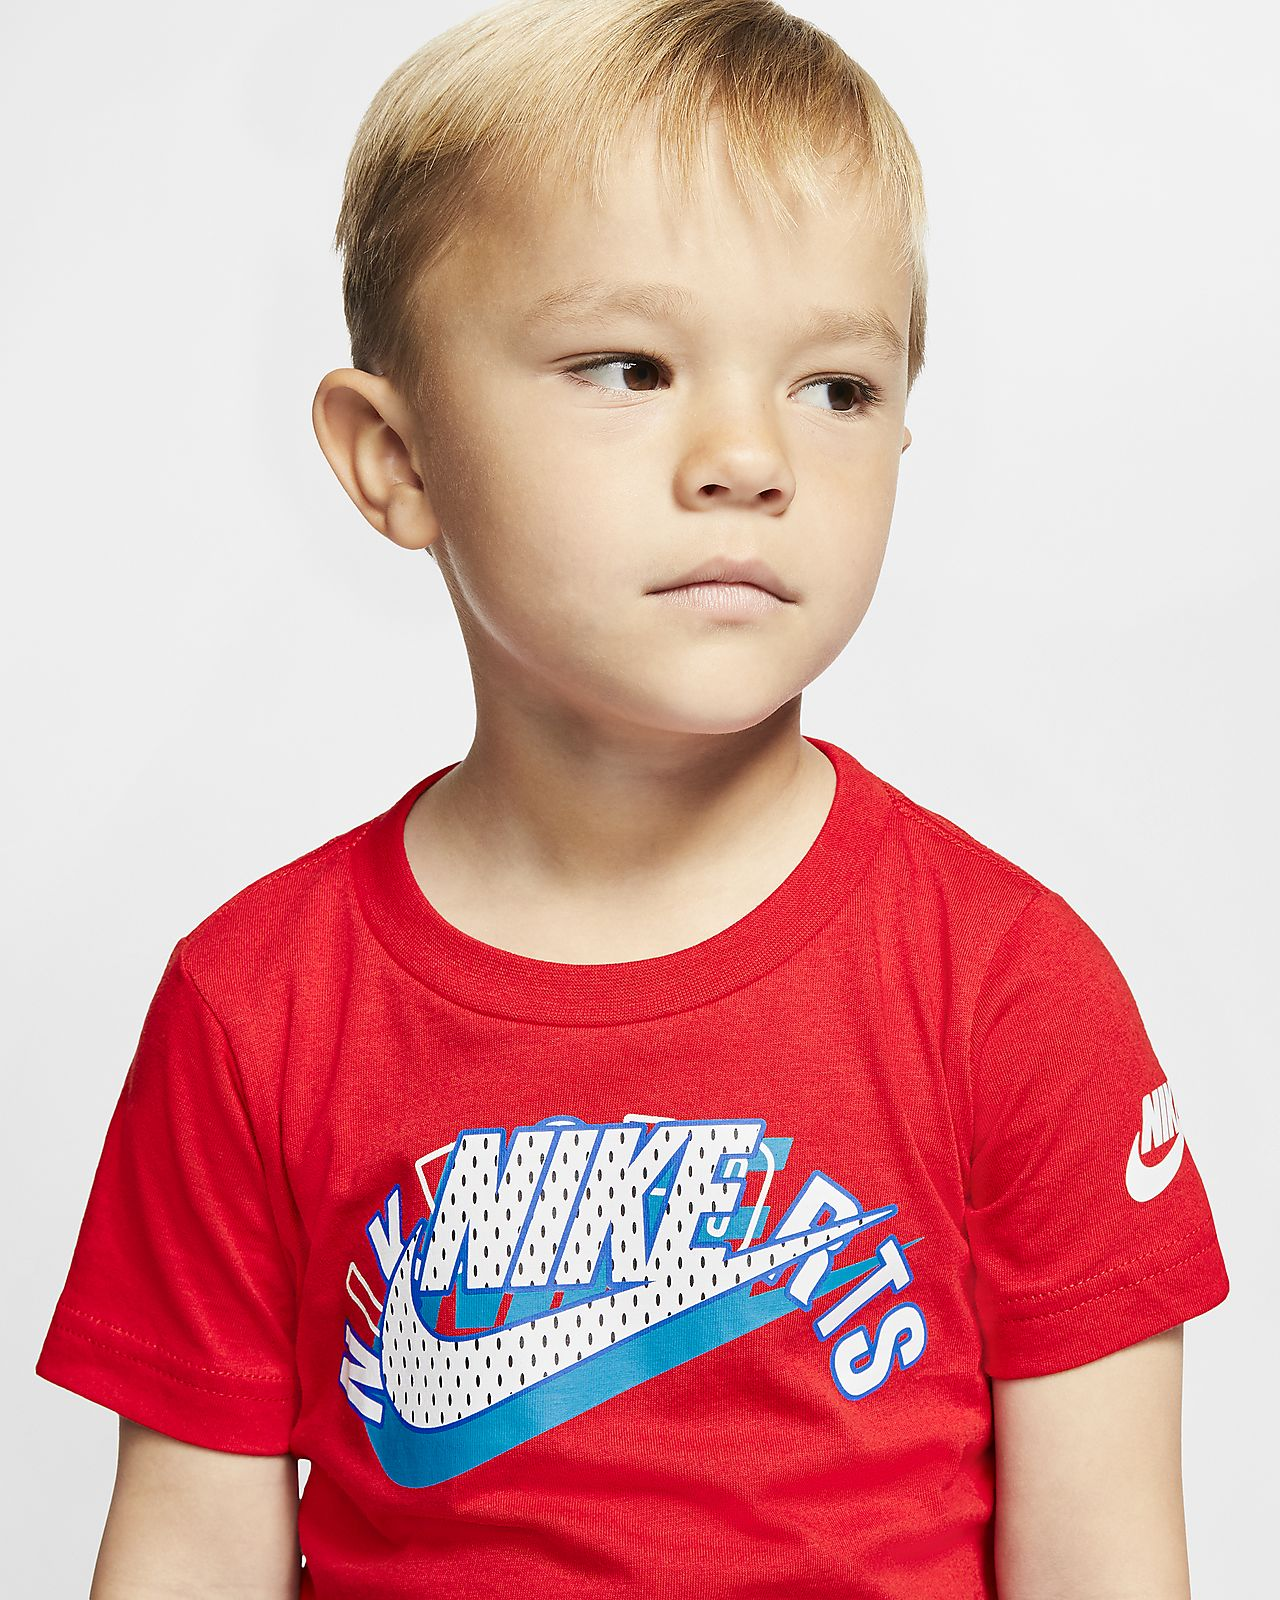 Nike Baby Toddler Boys Short Sleeve Tee T-Shirt Electric Green Dri-Fit 2 2T 4 4T